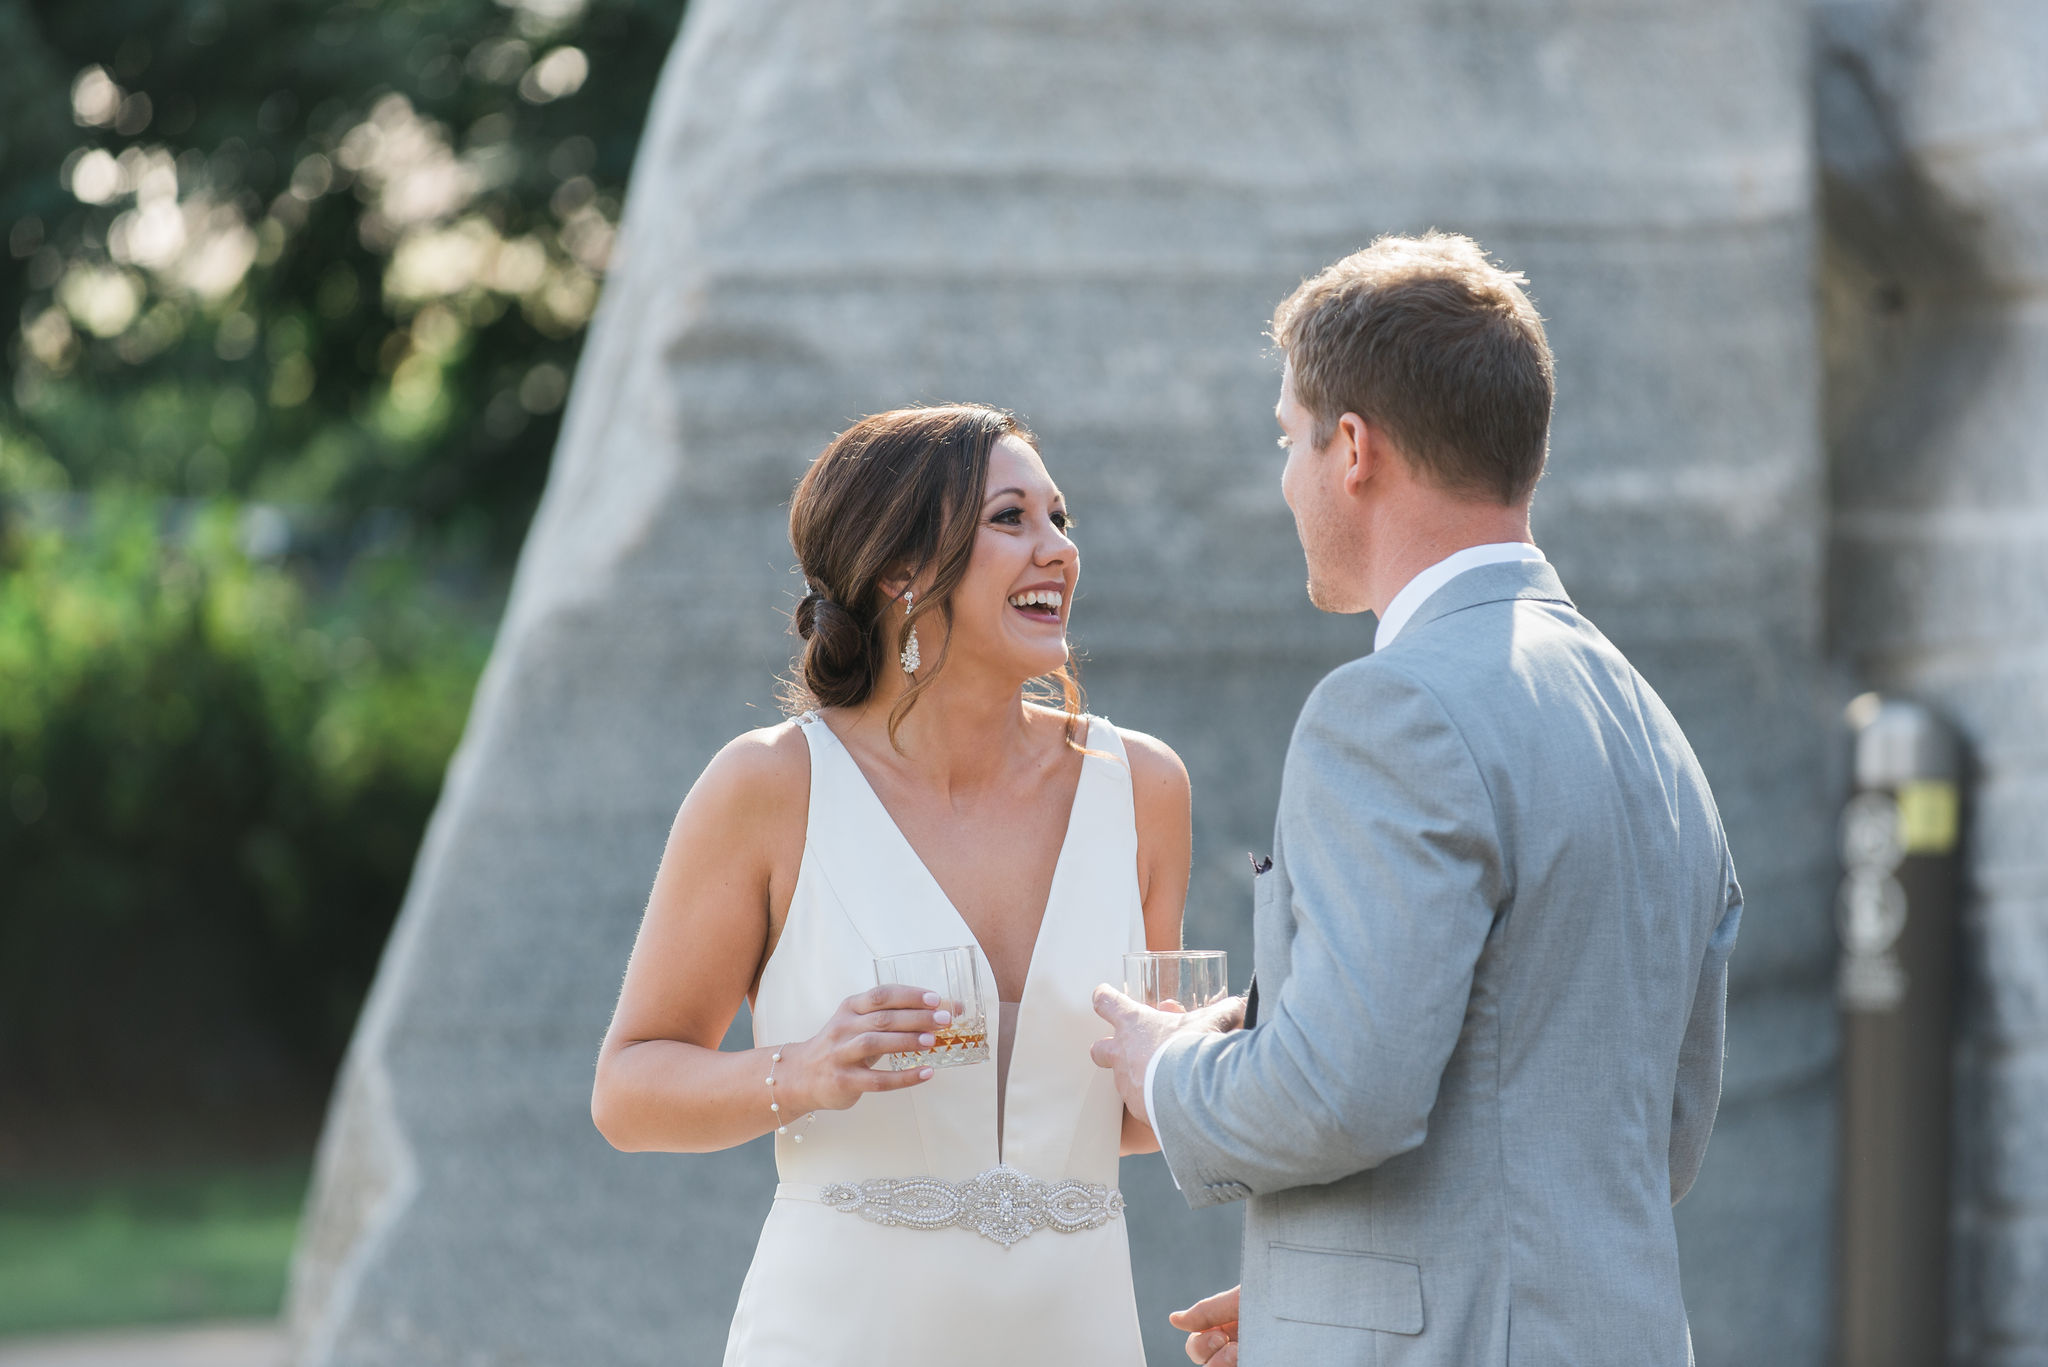 Bride has stunning makeup by Simply Beautiful Artistry and wears a plunging neckline dress from Poffie Girls